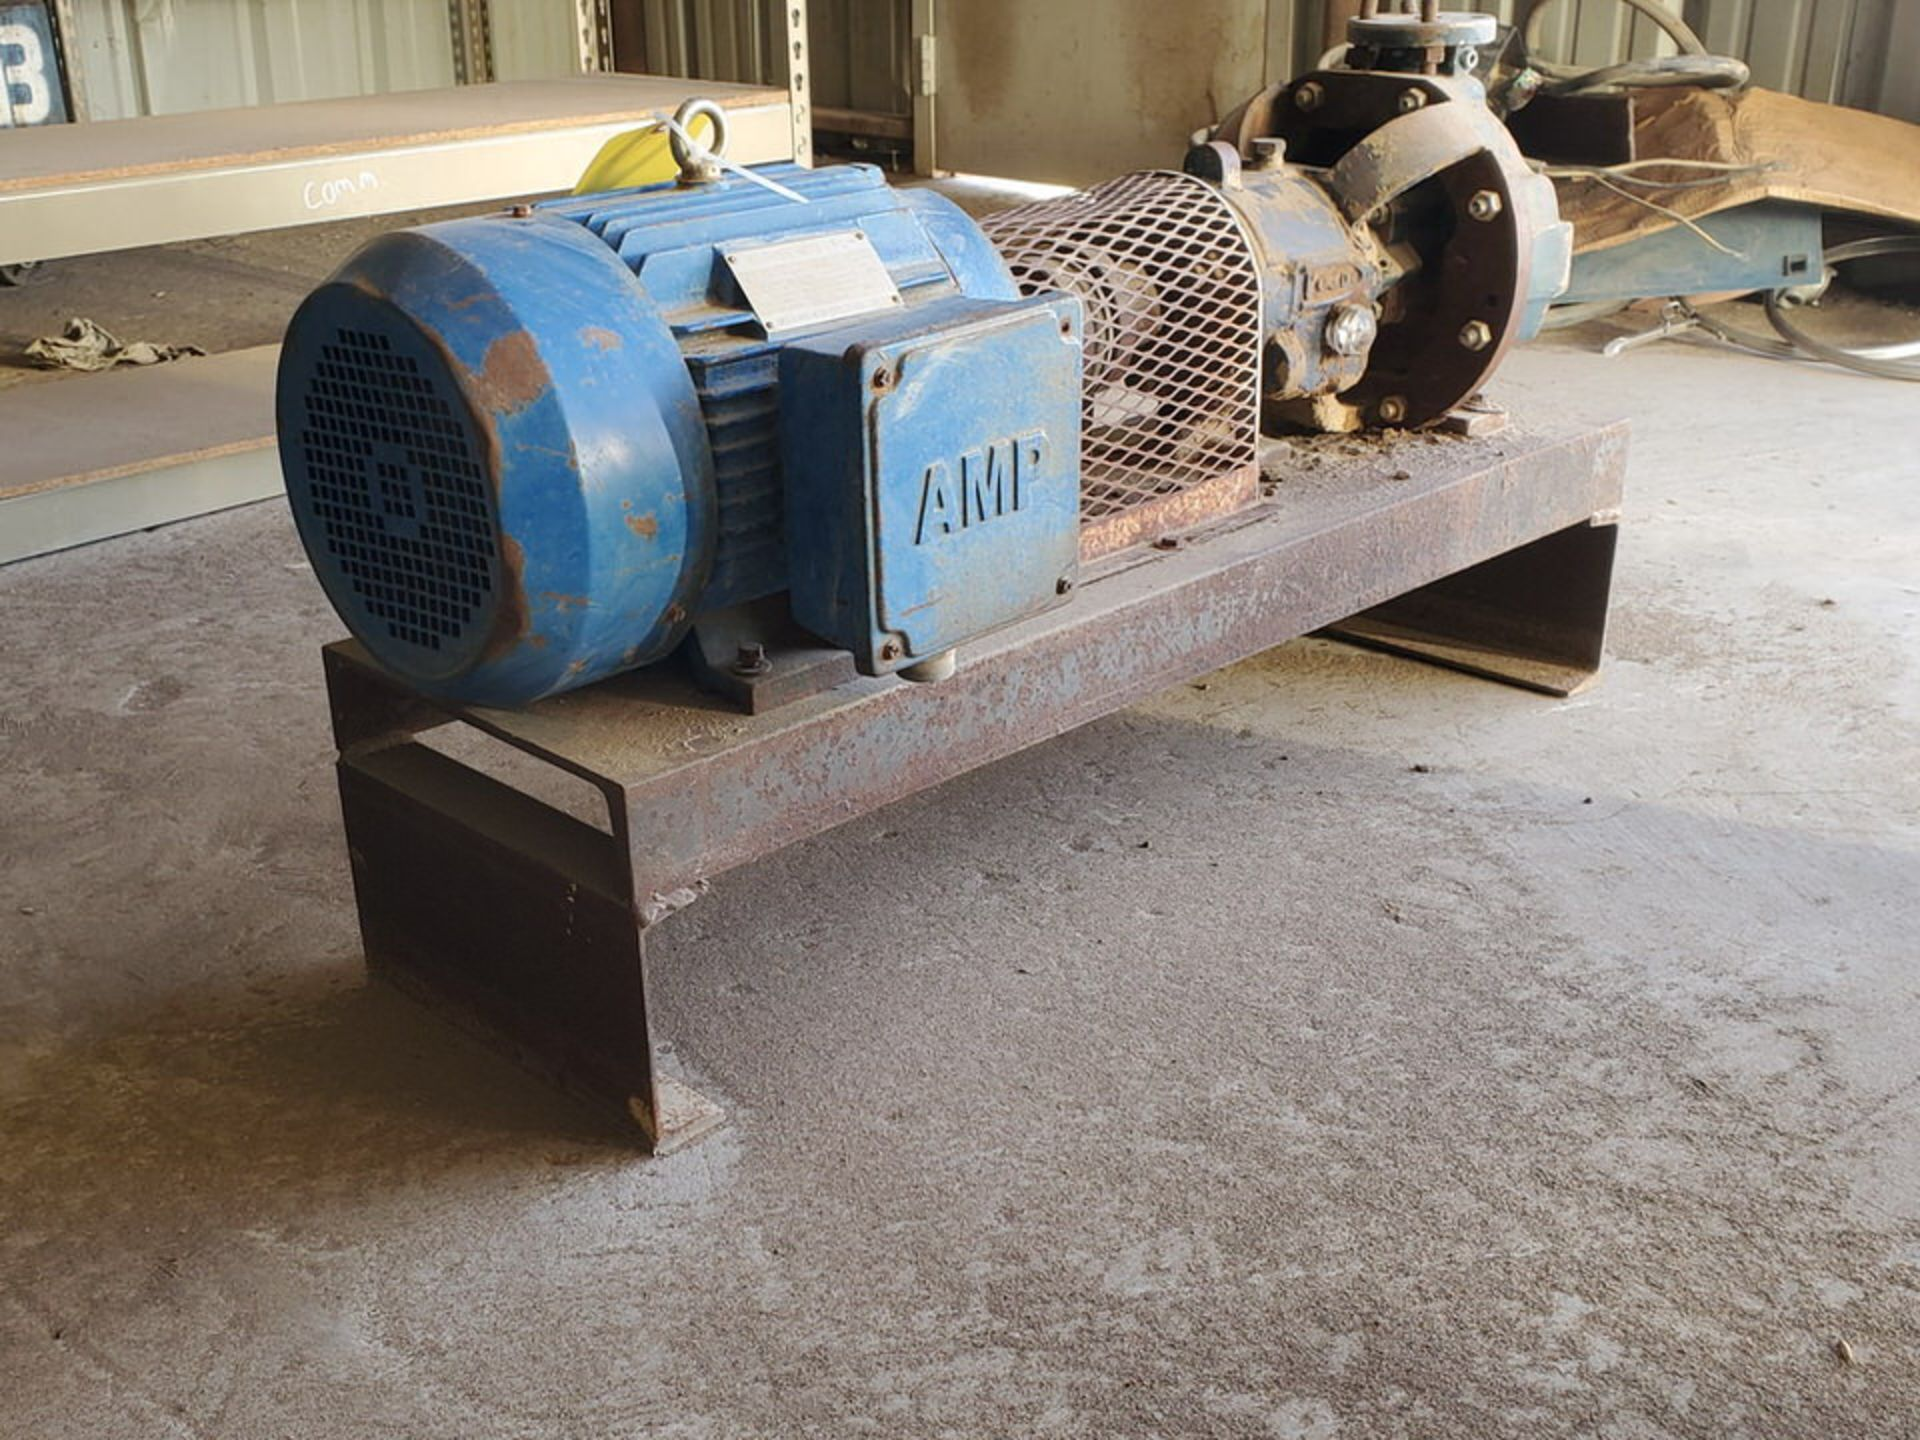 American-Marsh Pumps 1L1x1.5-6RV OSD Centrifugal Pump W/ 7.5HP Weg Motor - Image 7 of 9